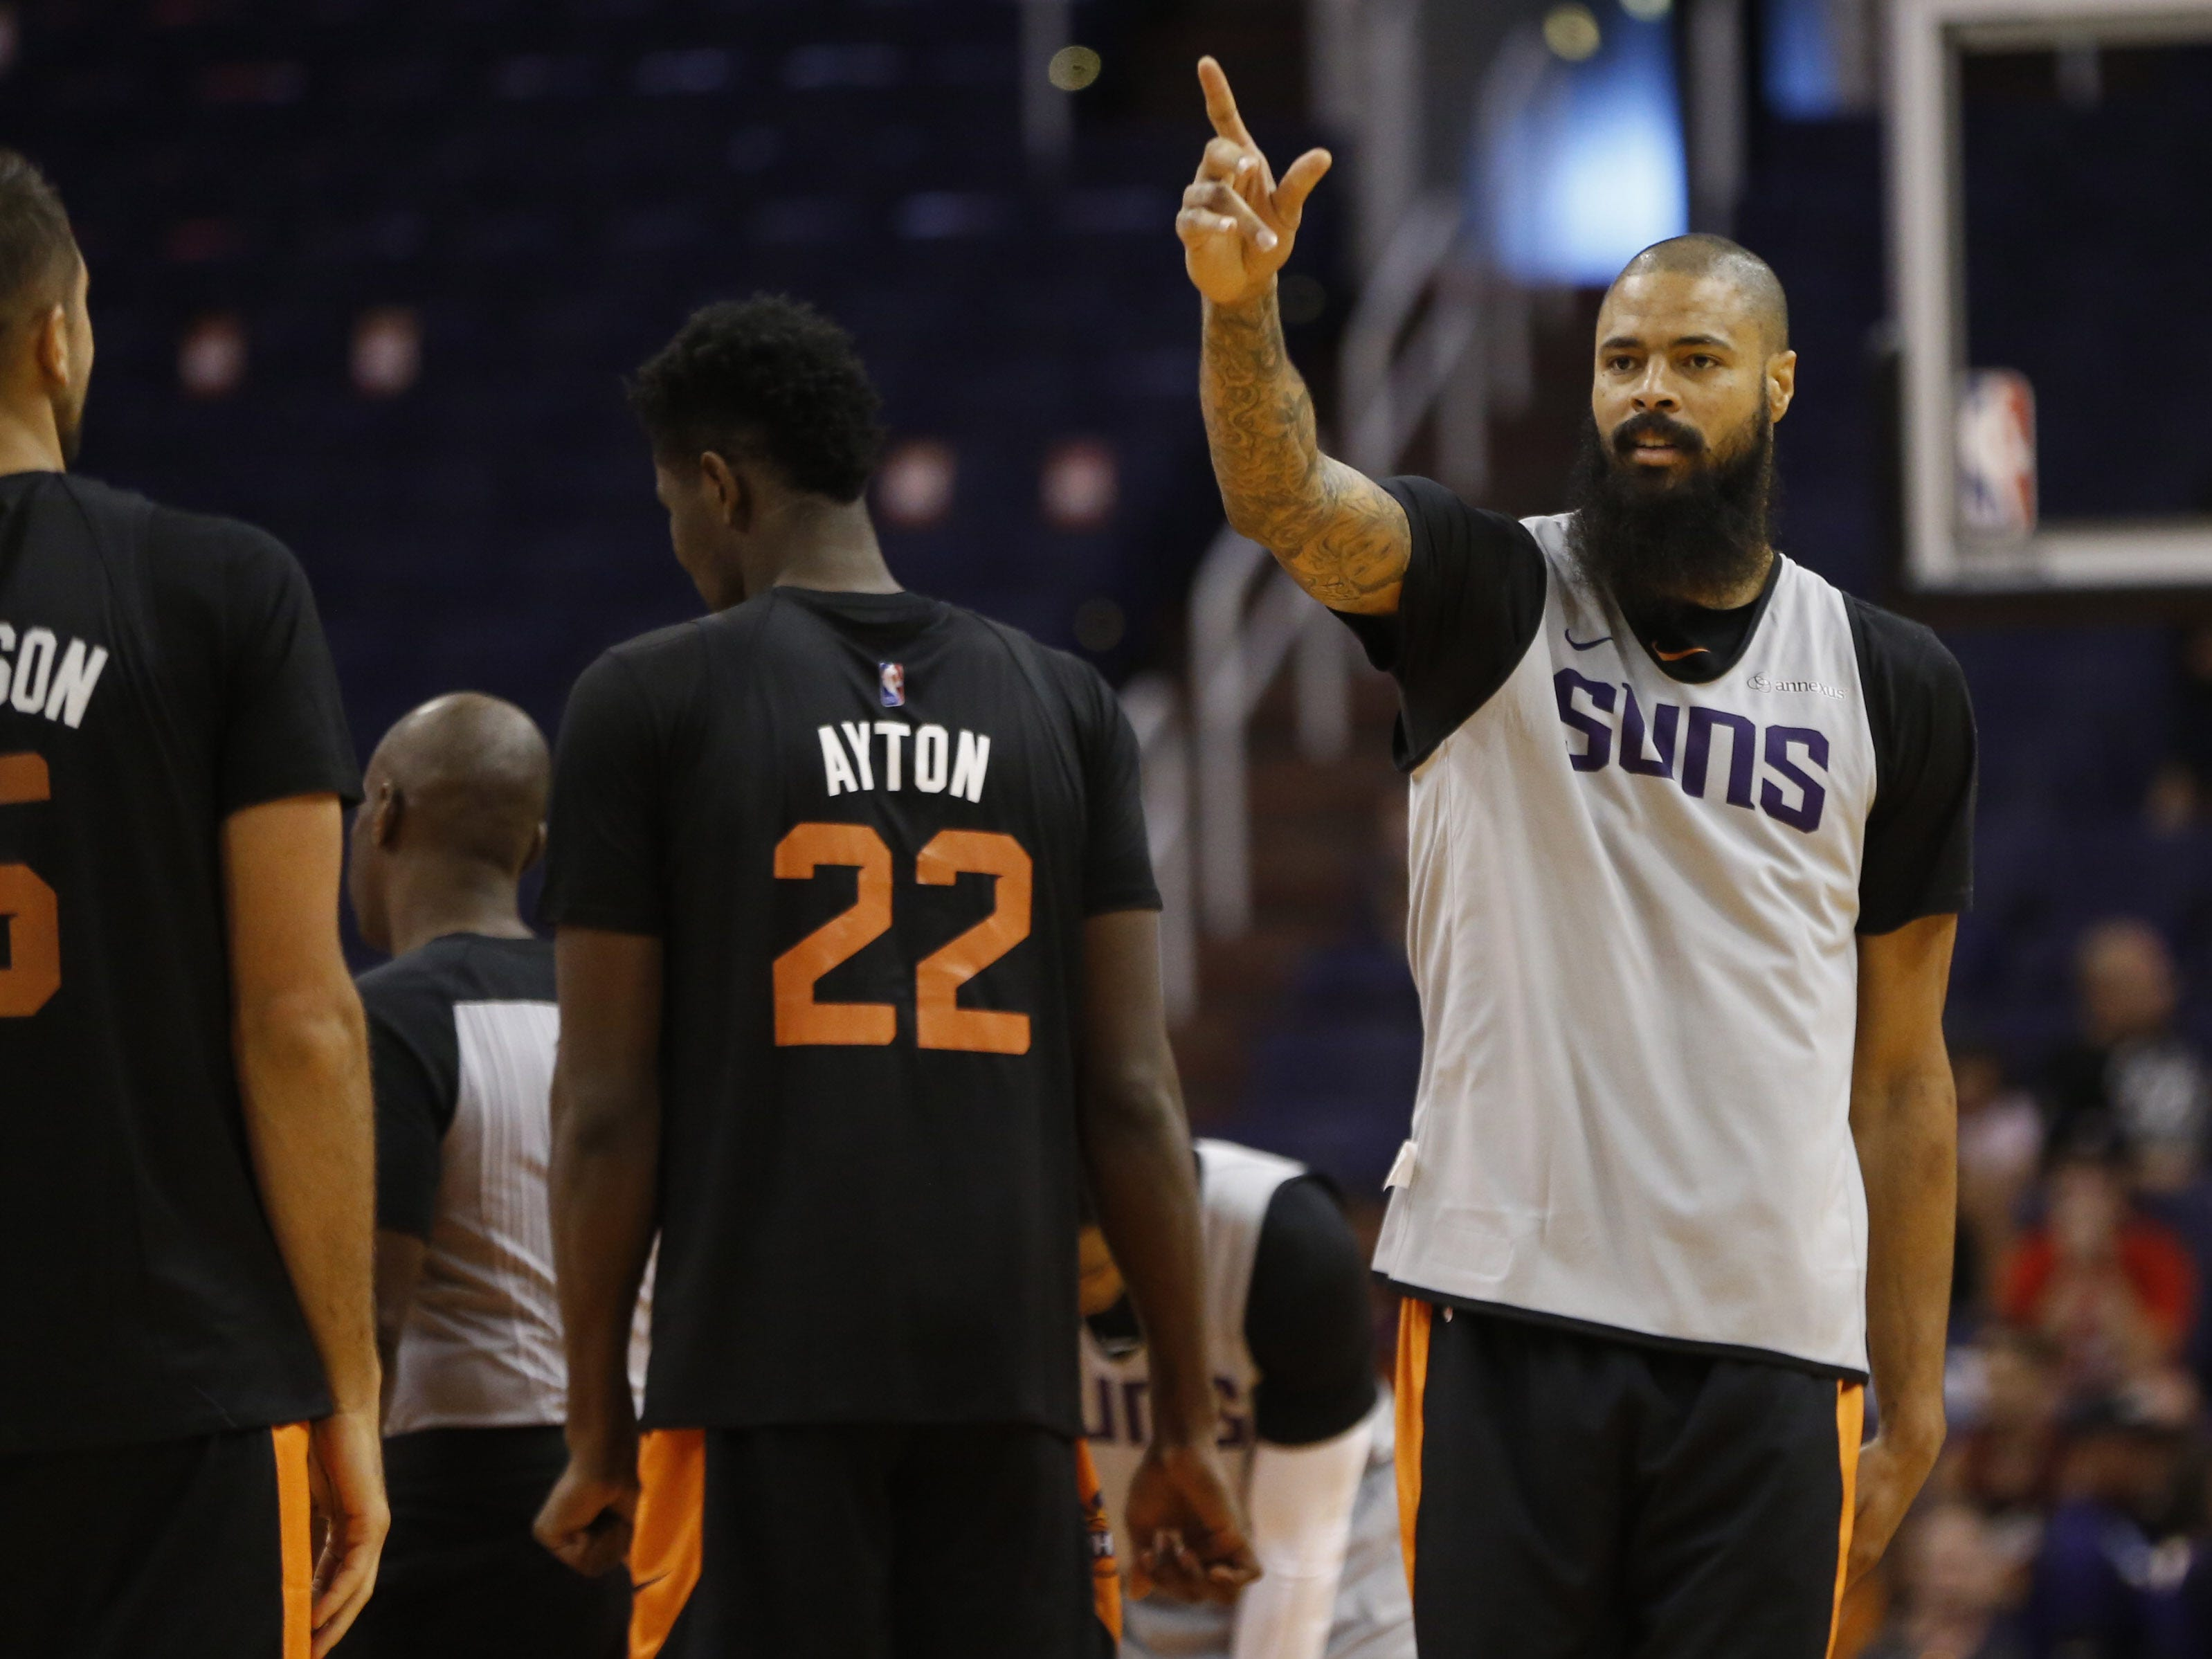 Suns Tyson Chandler points to the crowd during an Open Practice at Talking Stick Resort Arena in Phoenix, Ariz. on Sept. 29, 2018.